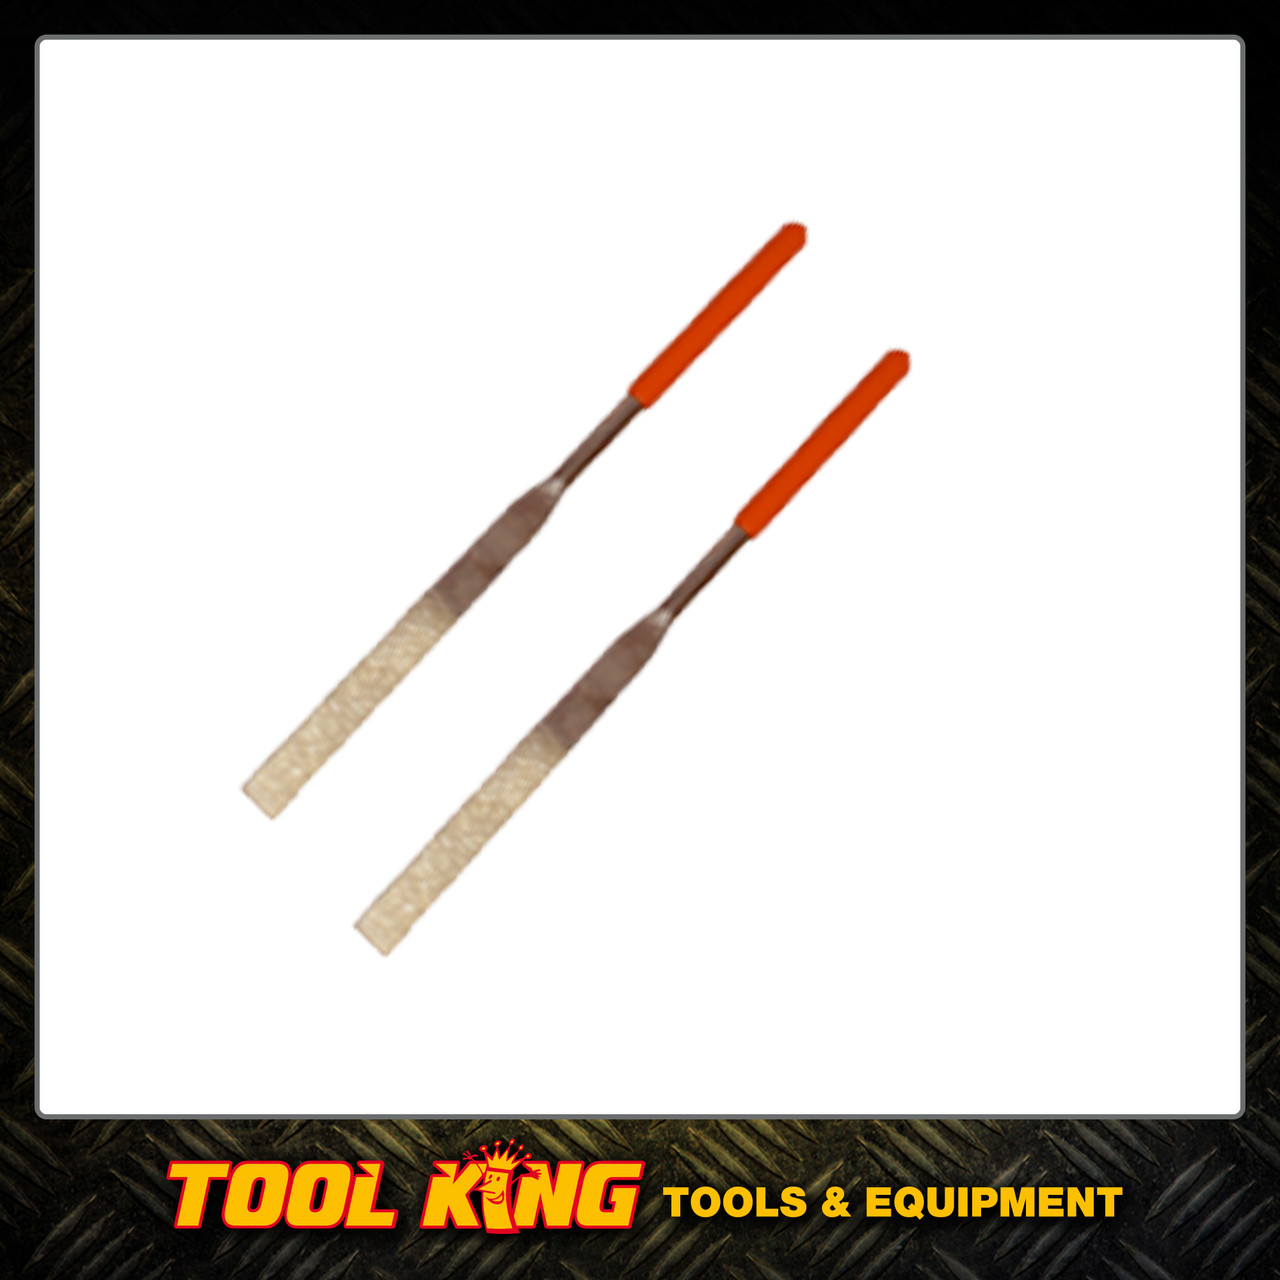 Ignition points files 2pc set Diamond coated T&E Tools